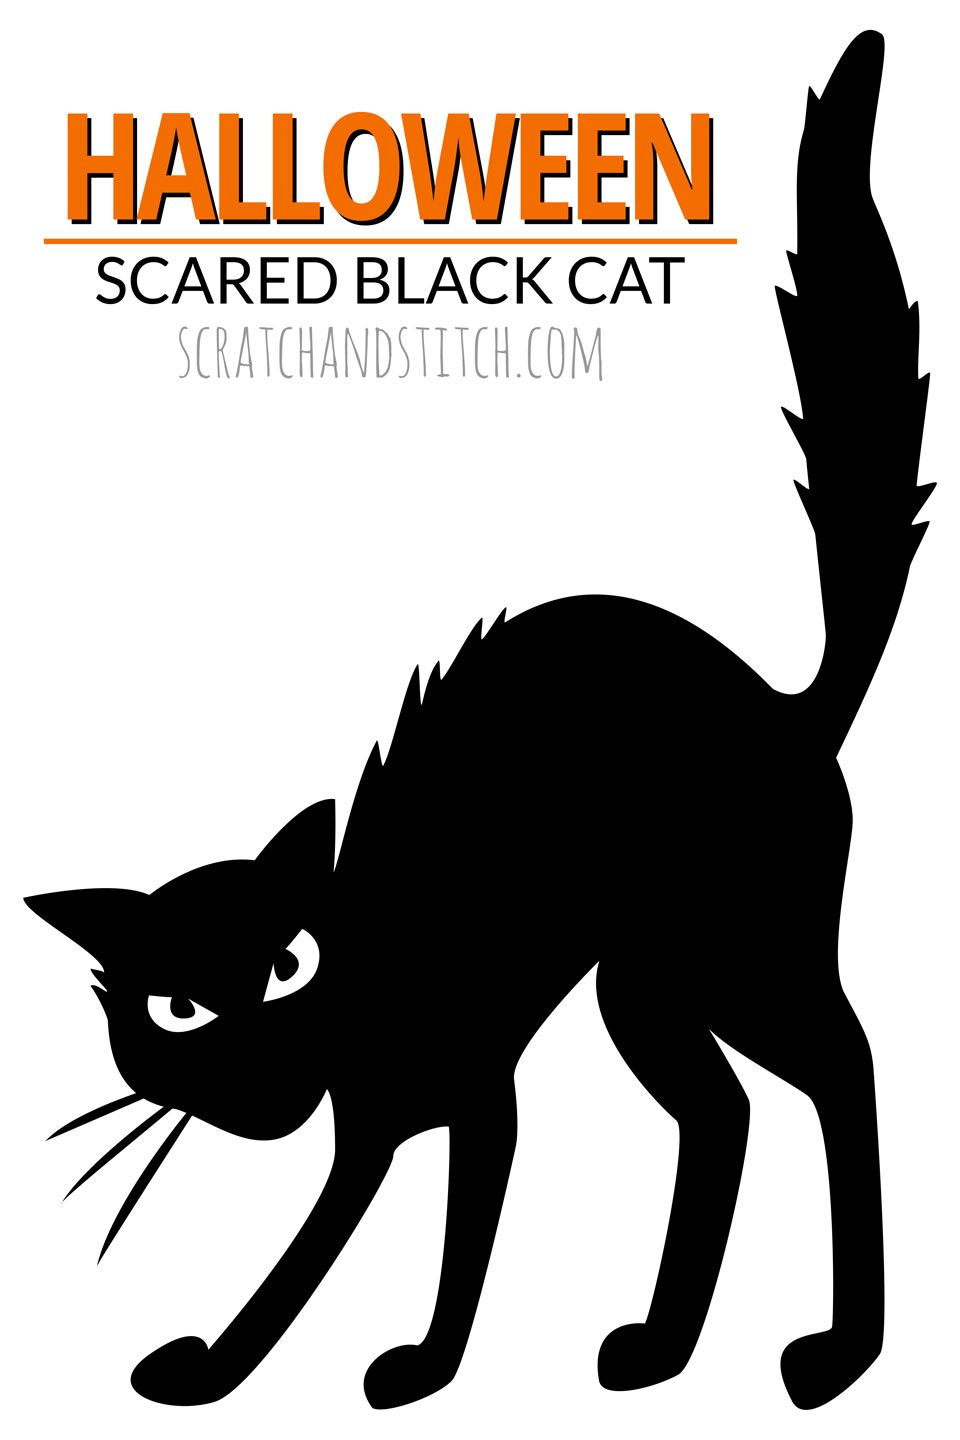 black cat templates for halloween - 8 easy halloween decor ideas halloween crafts decor